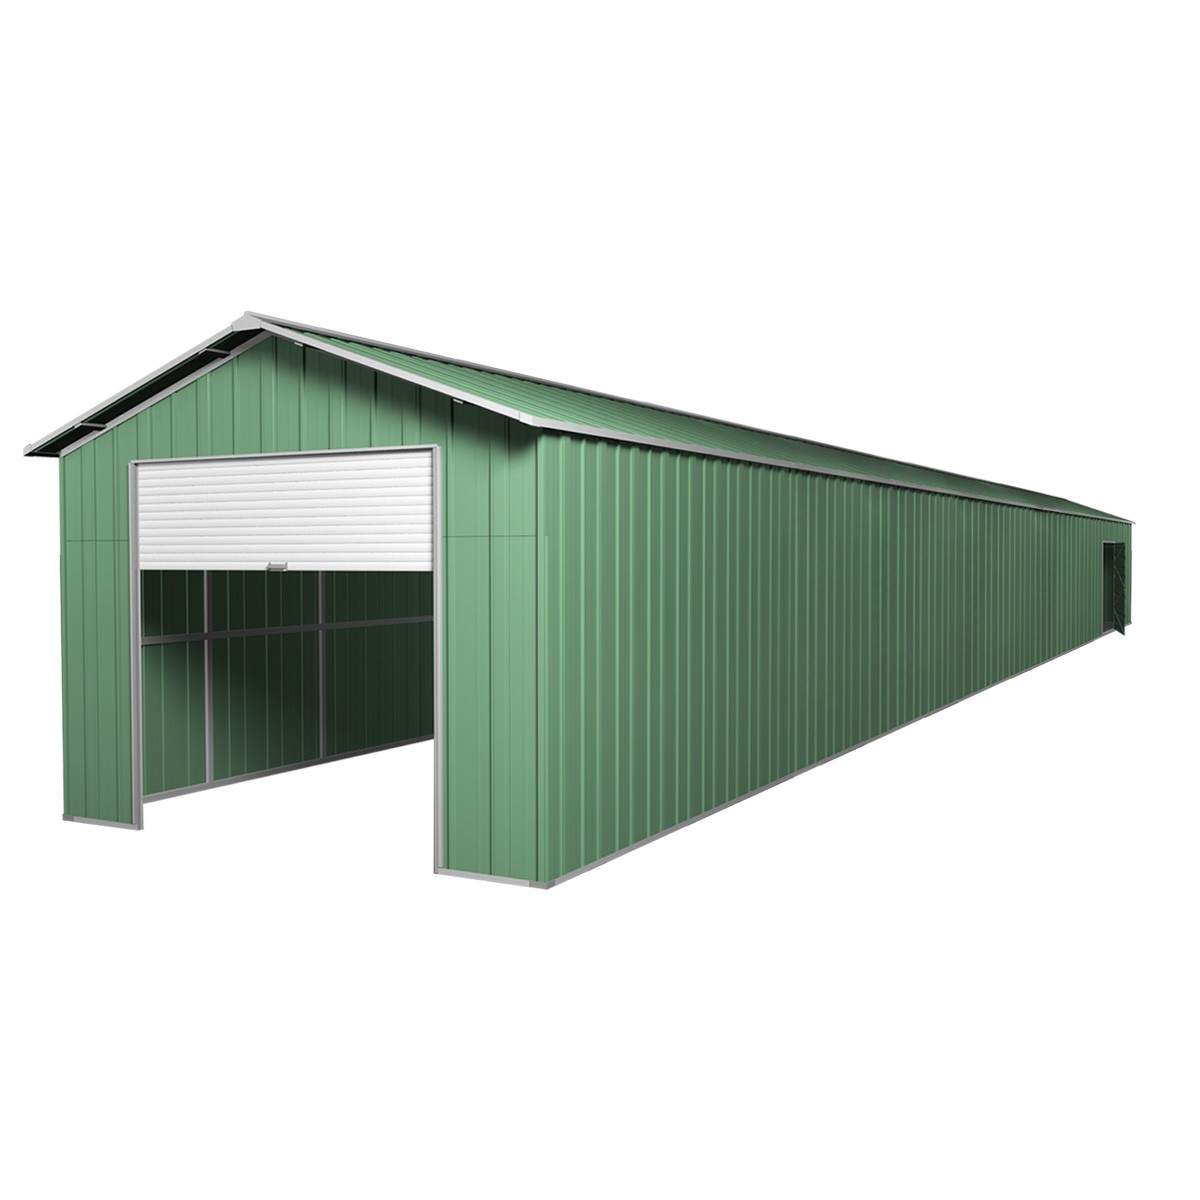 garage doors roller stratco image shed id improvement door home for products